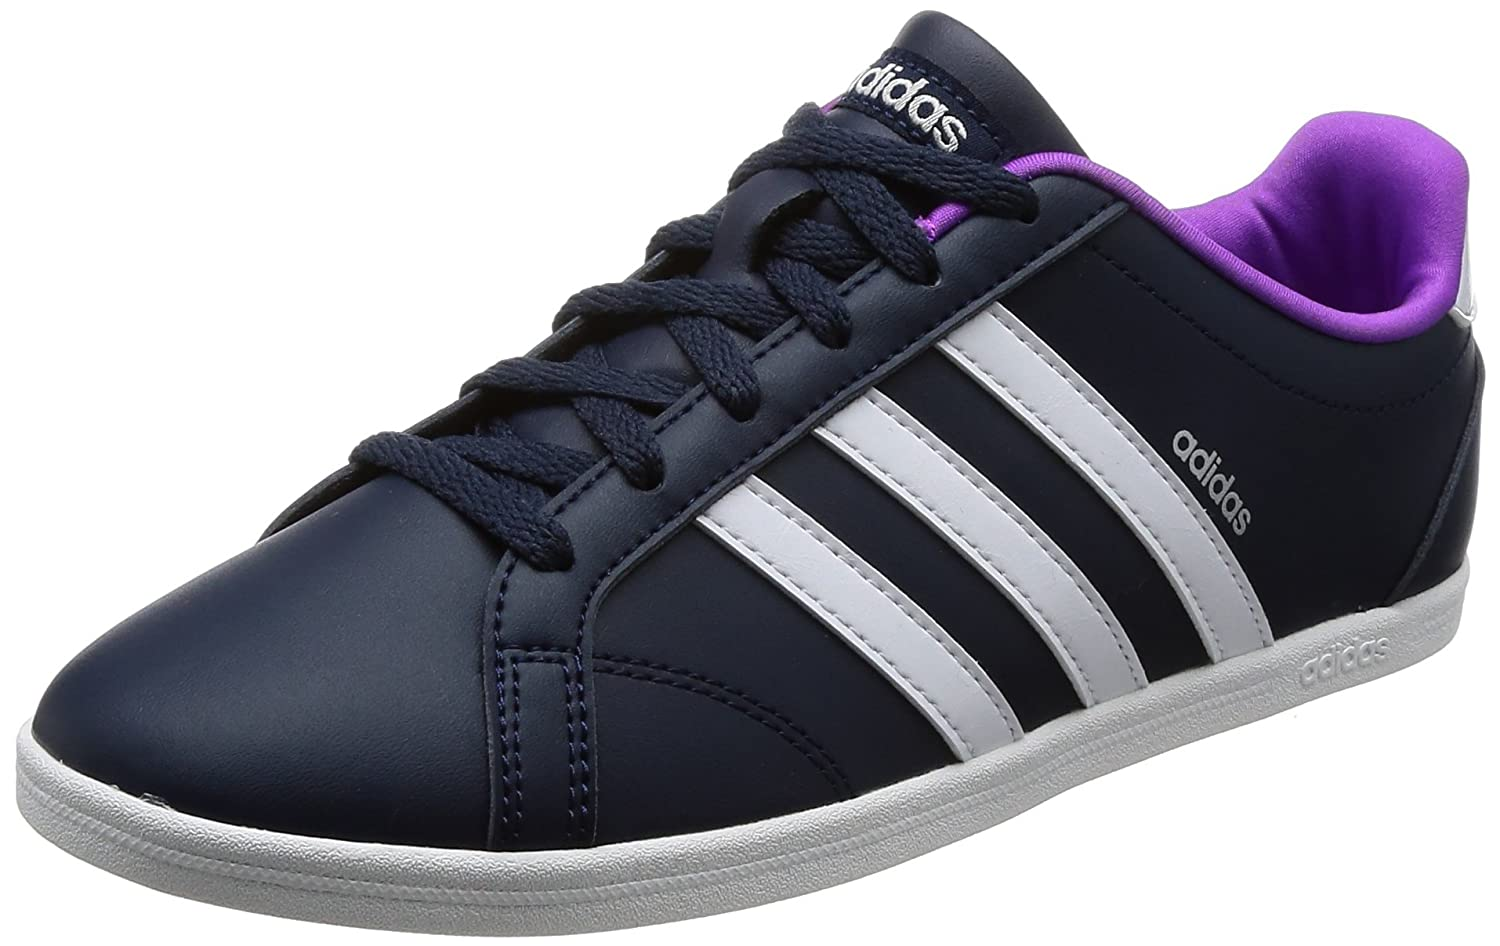 adidas Zapatillas Vs Zapatillas Coneo QT W Ftwbla W/Gridos, Vs Chaussures de Fitness Mixte Adulte Bleu Marine dbb589b - jessicalock.space